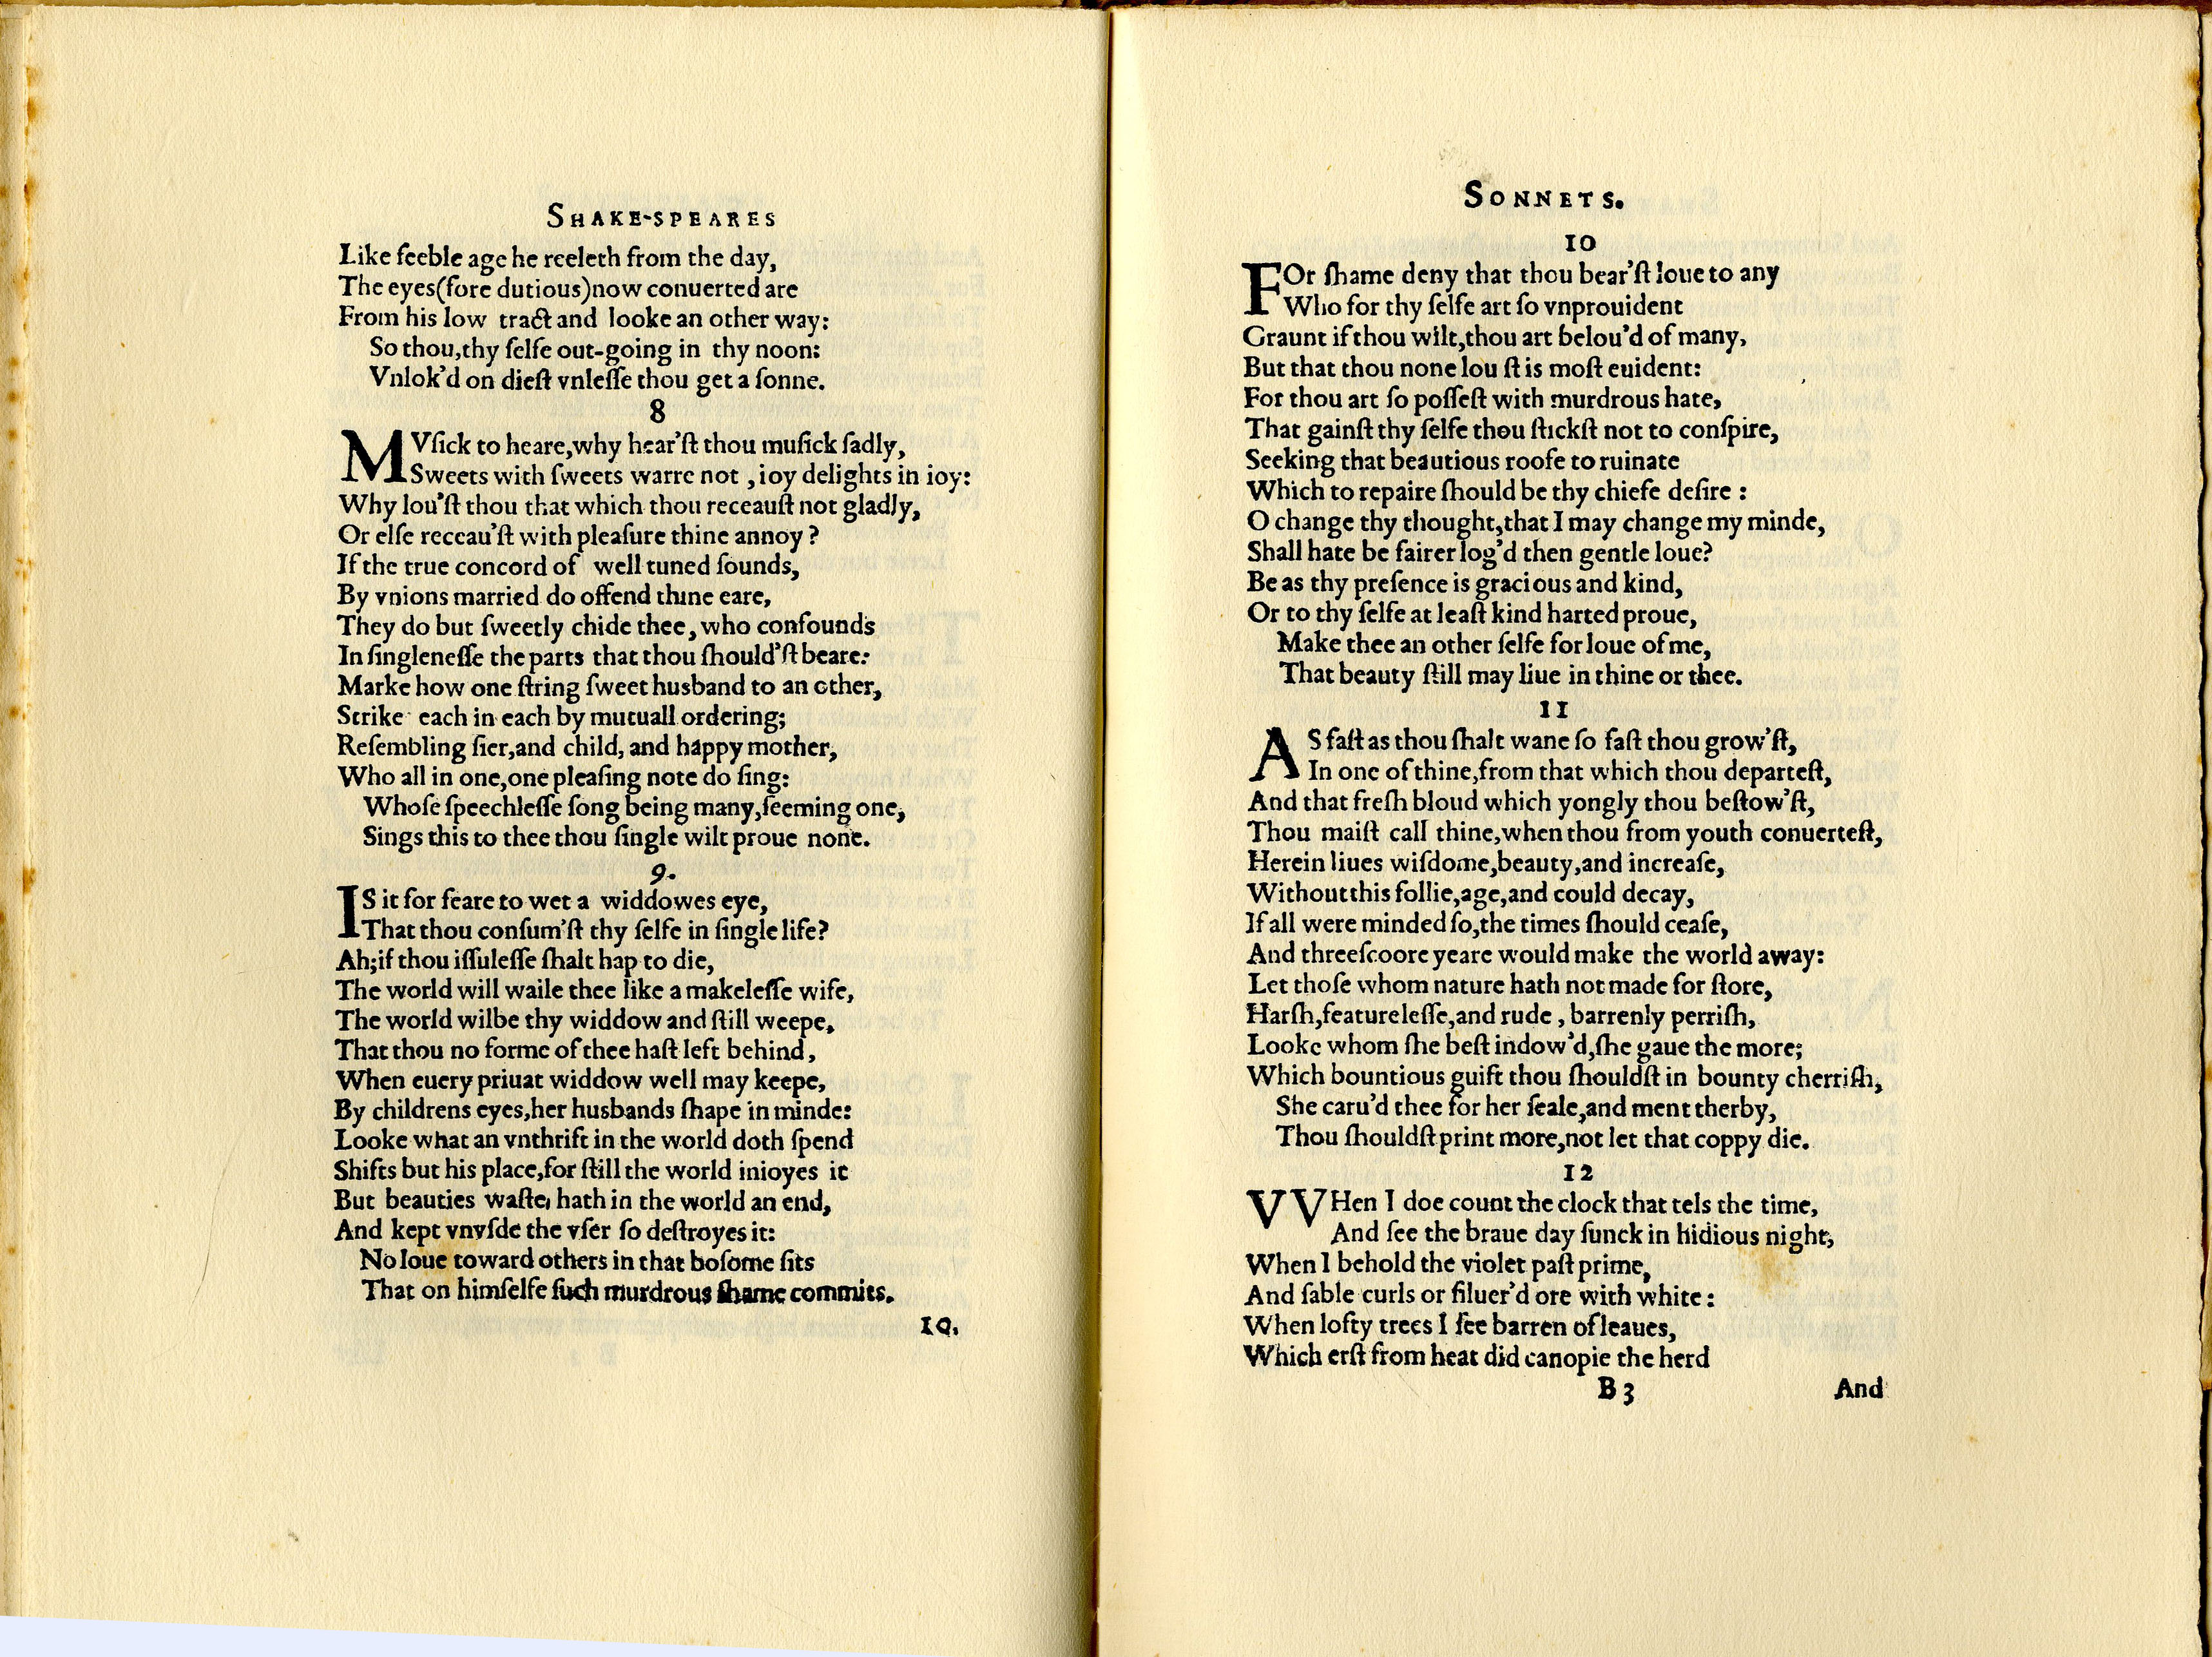 PRINTING UP CLOSE, WILLIAM SHAKESPEARE, SONNETS 1609